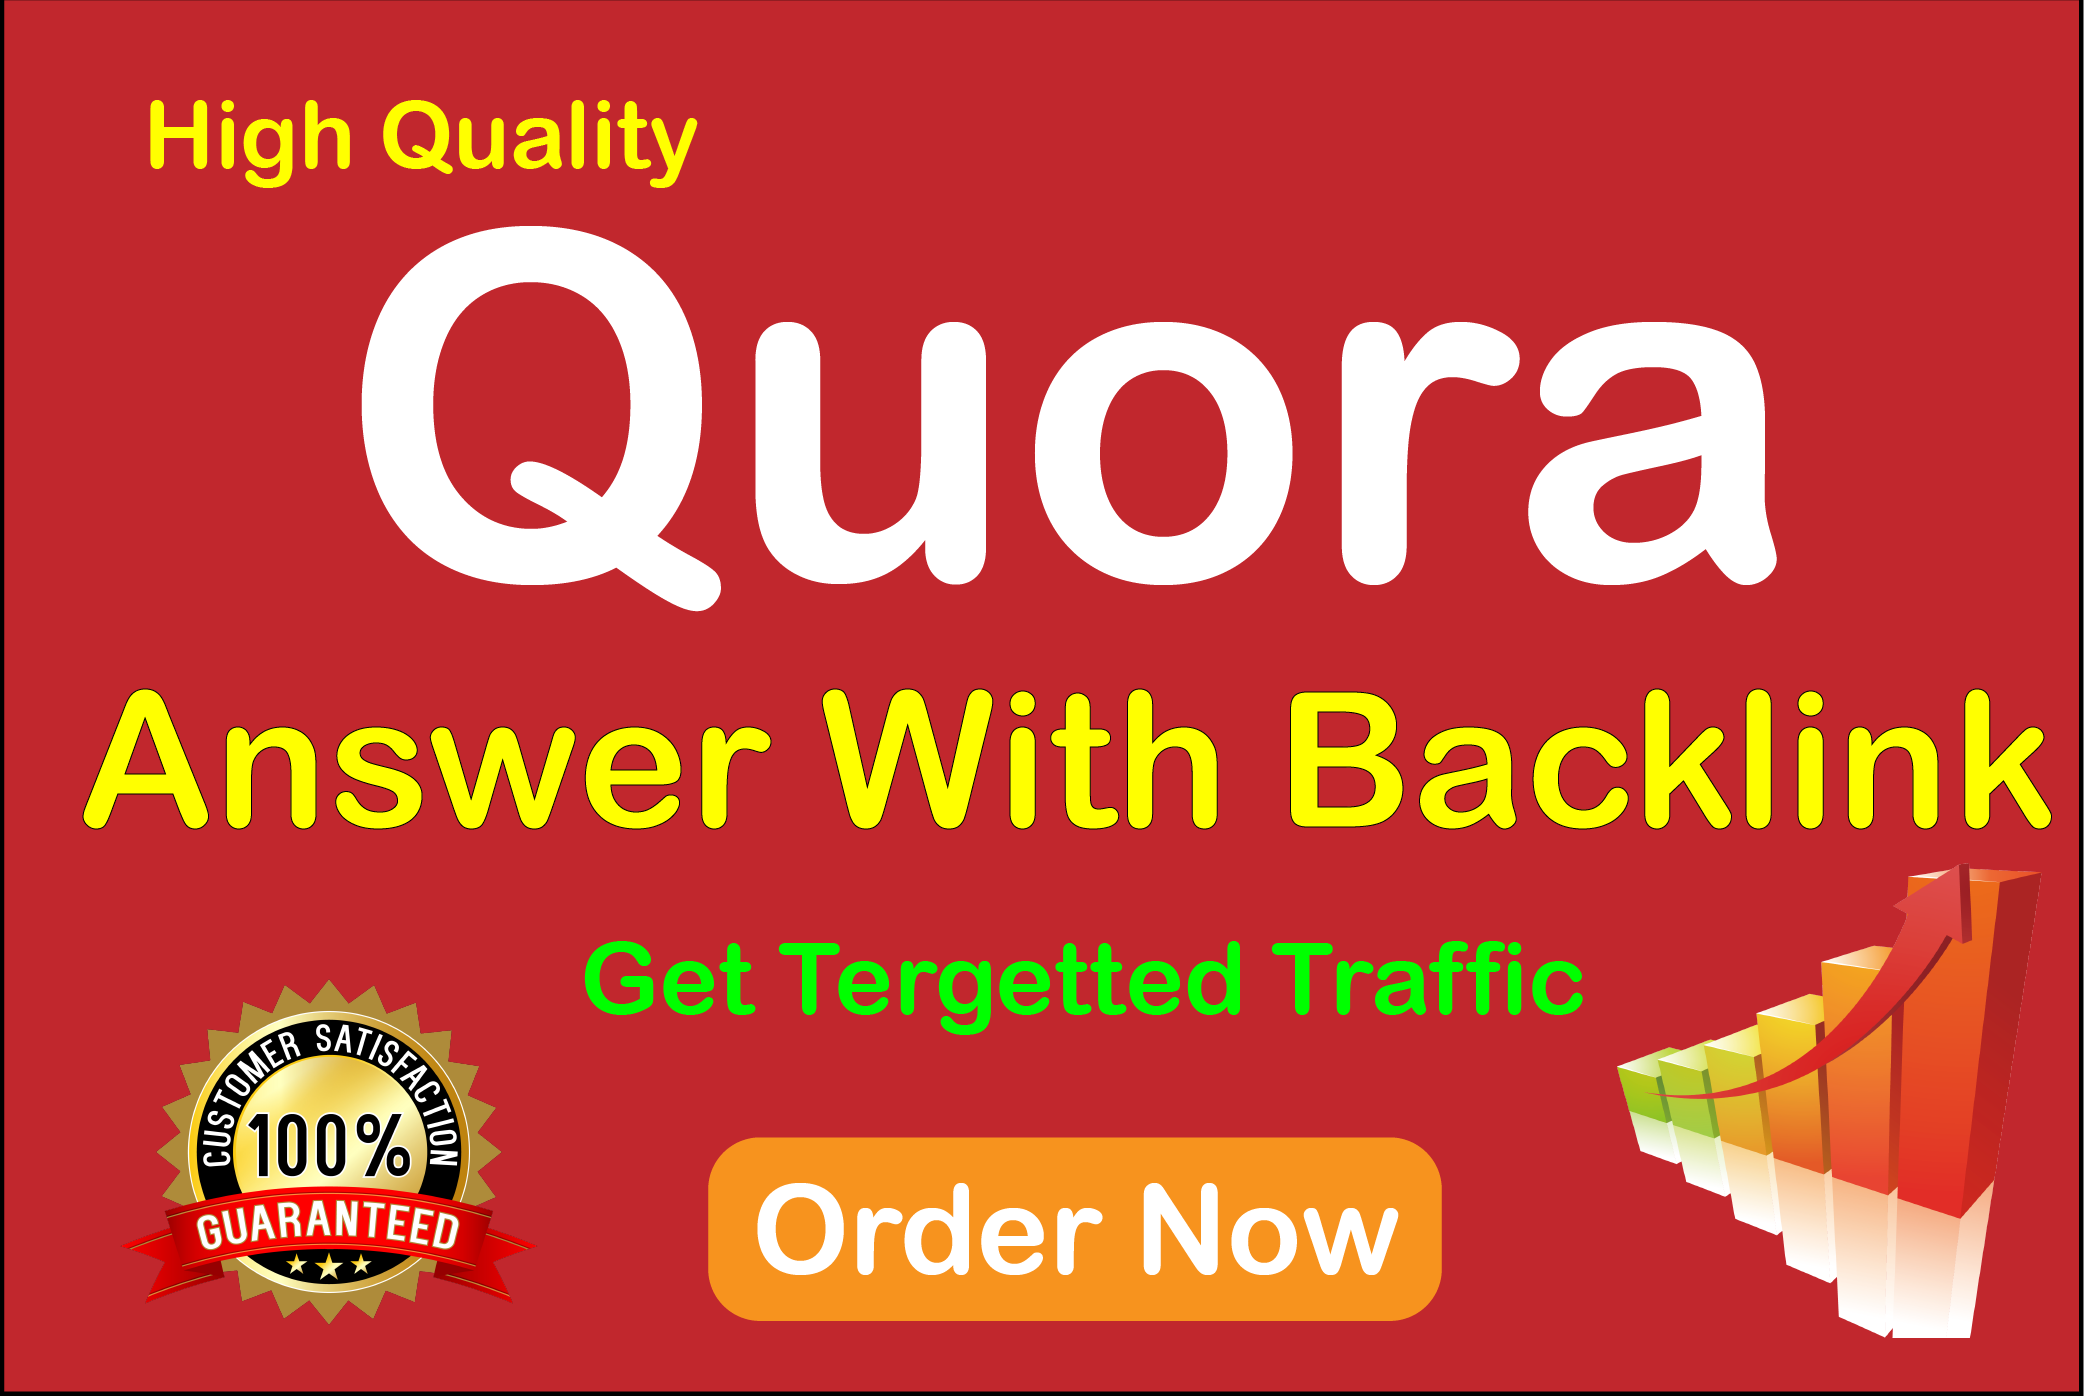 I Will provide 10 Quora question answer with backlinks to promote your website